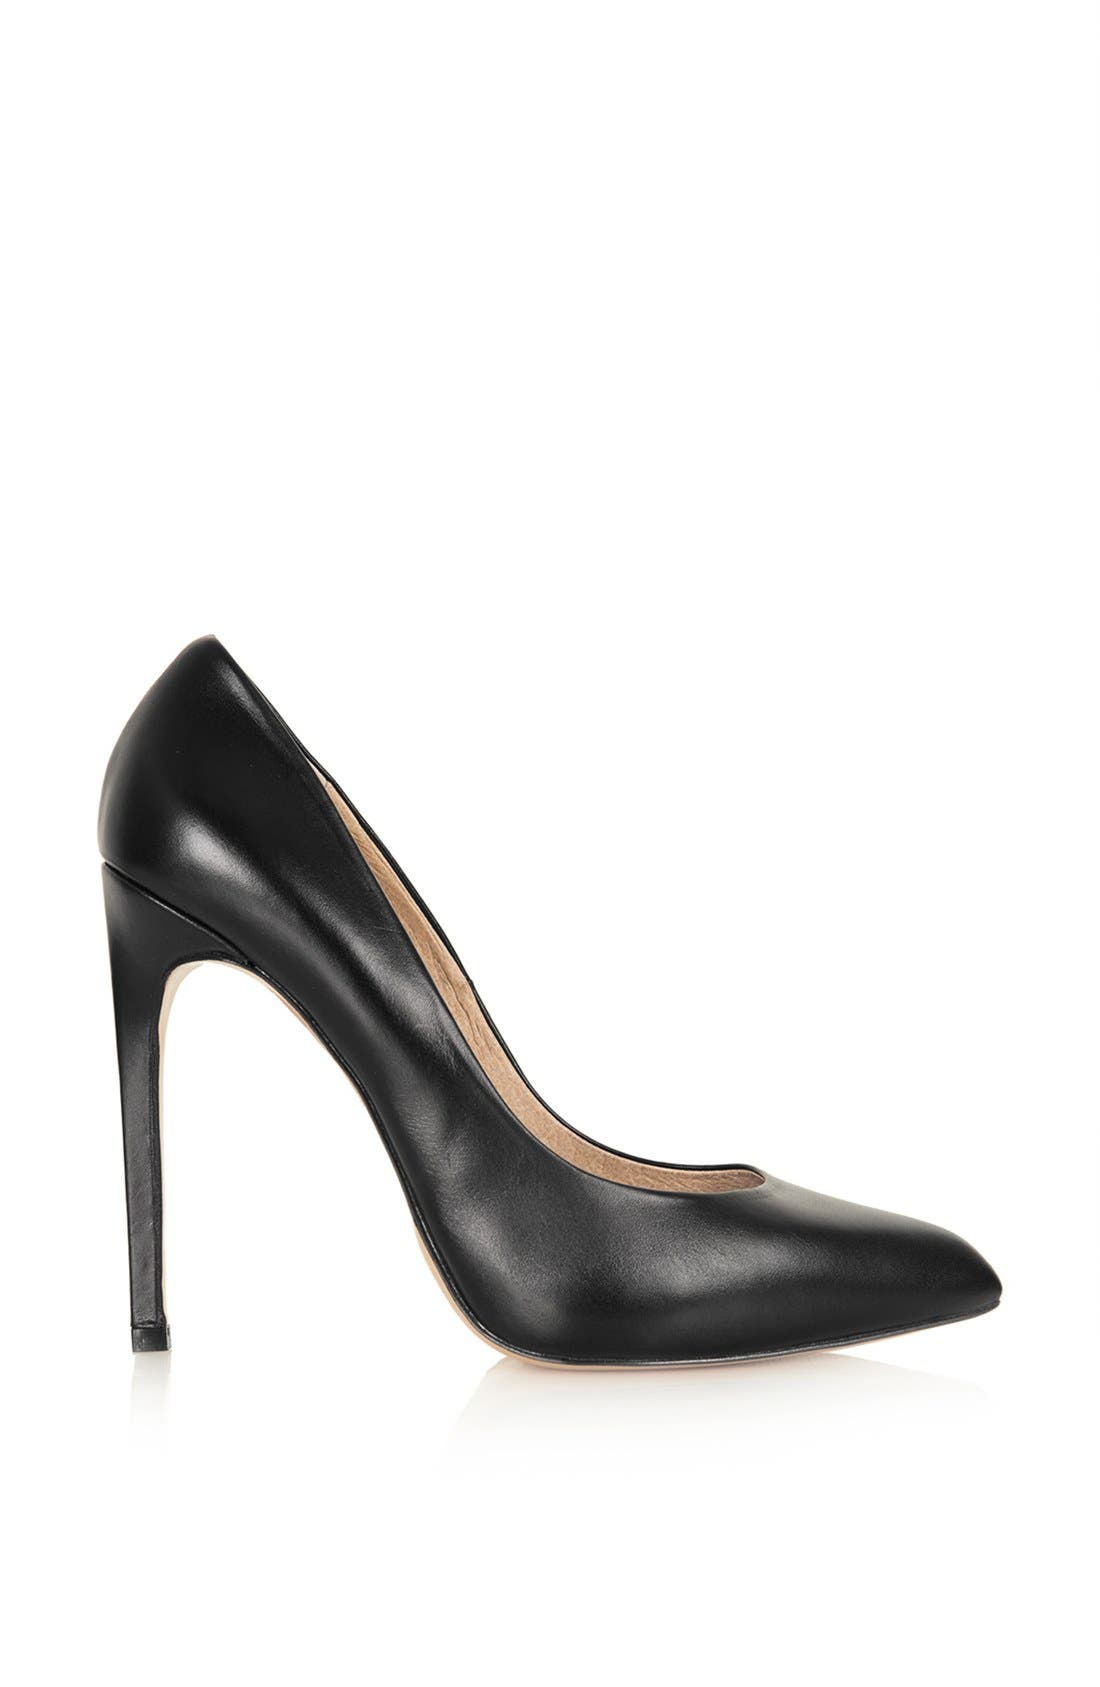 Alternate Image 1 Selected - Topshop 'The Collection Starring Kate Bosworth' Pump